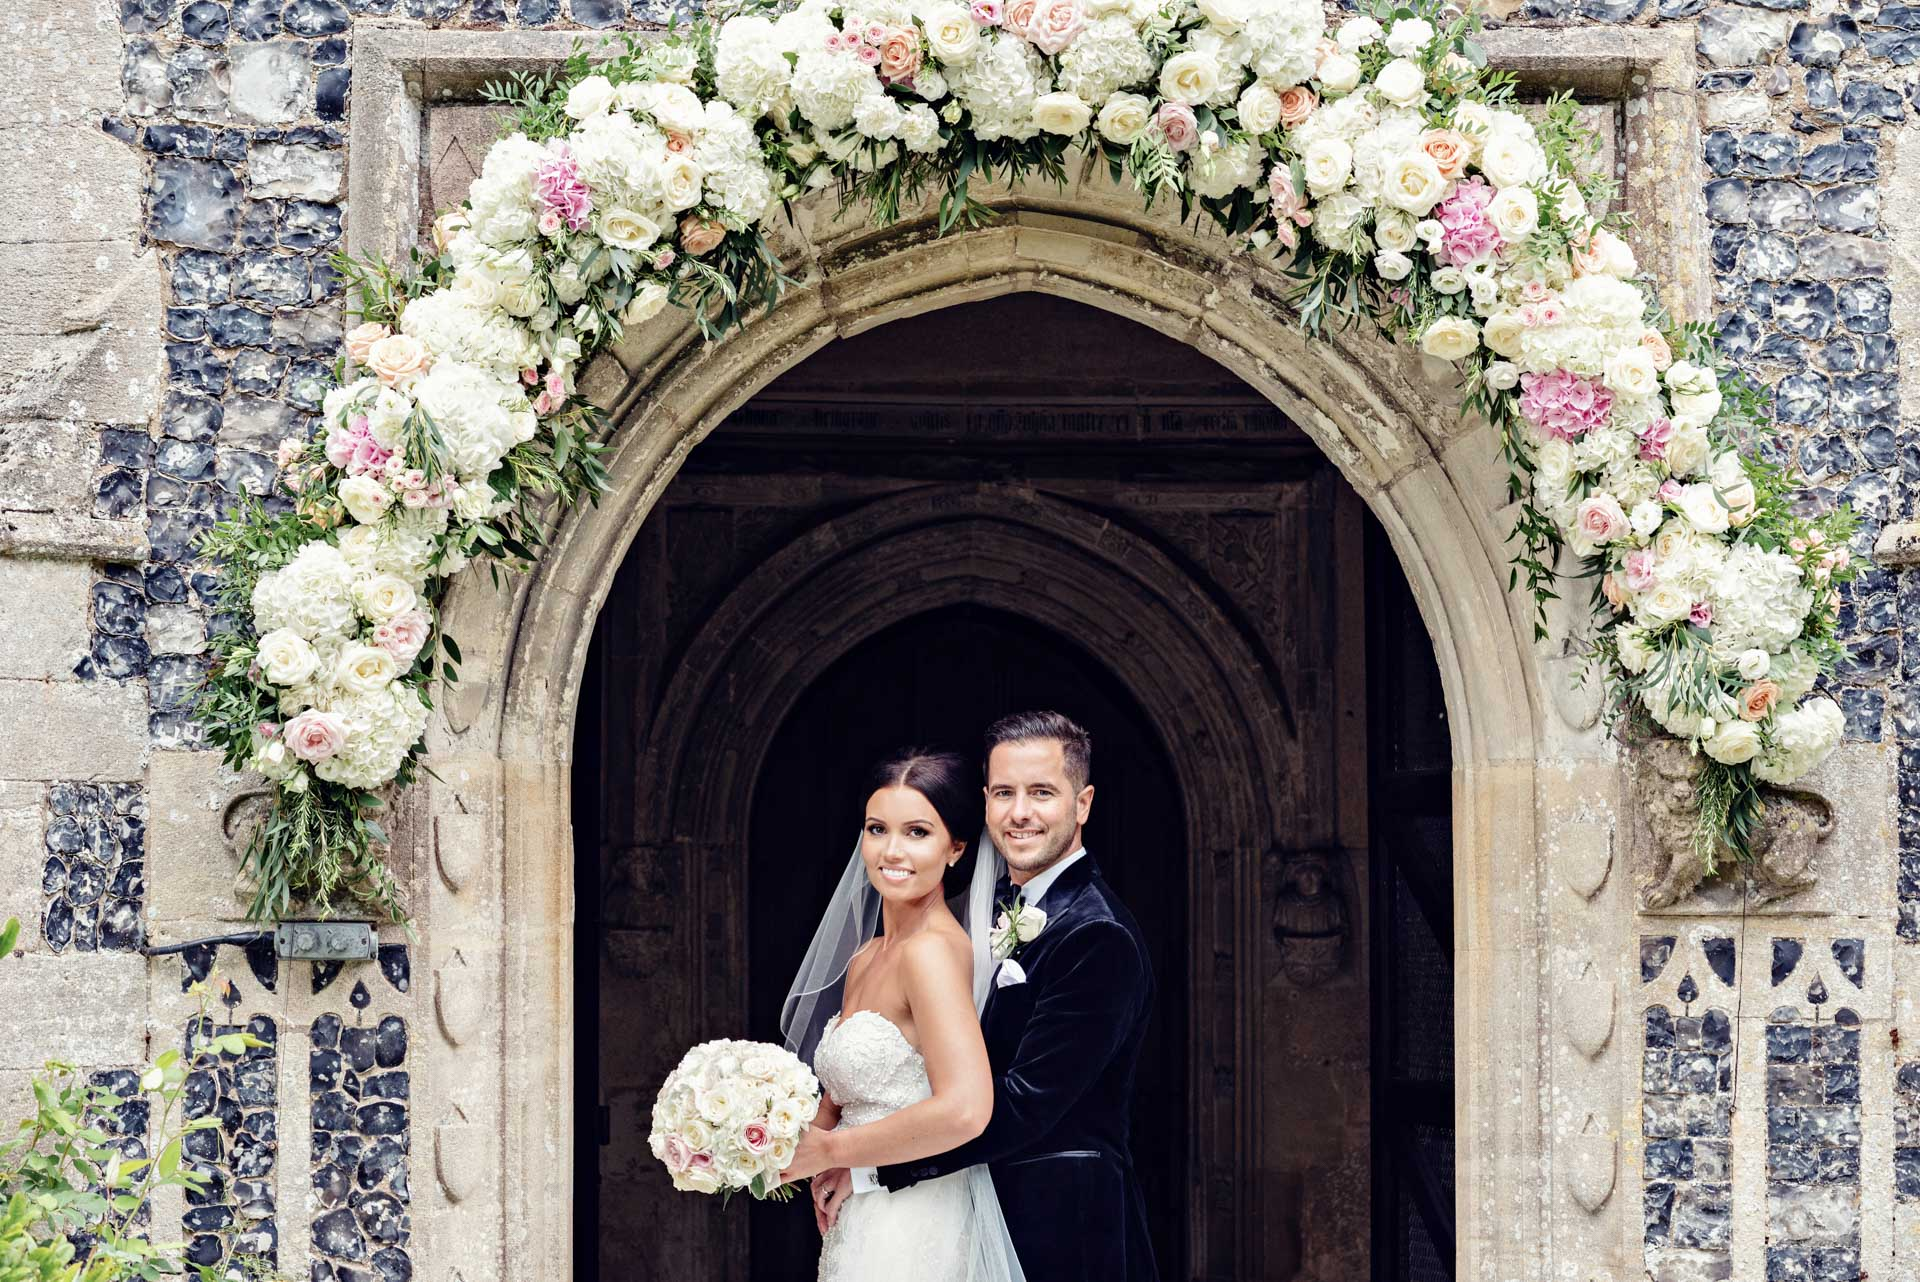 A simply amazing floral arch at Hengrave's gorgeous chapel.